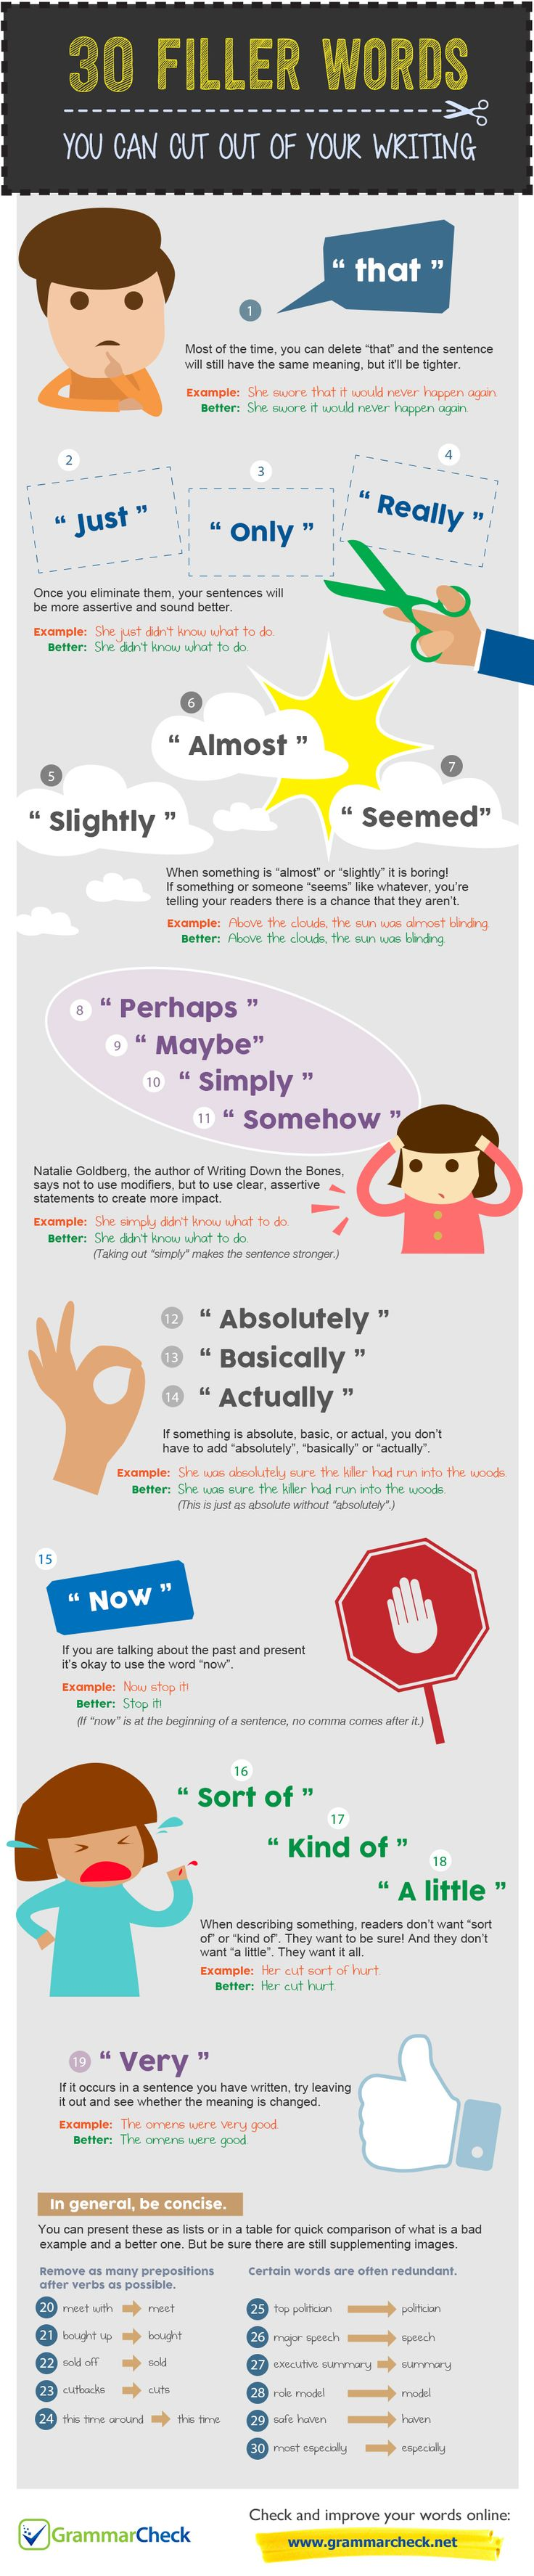 30 Filler Words You Can Cut Out of Your Writing